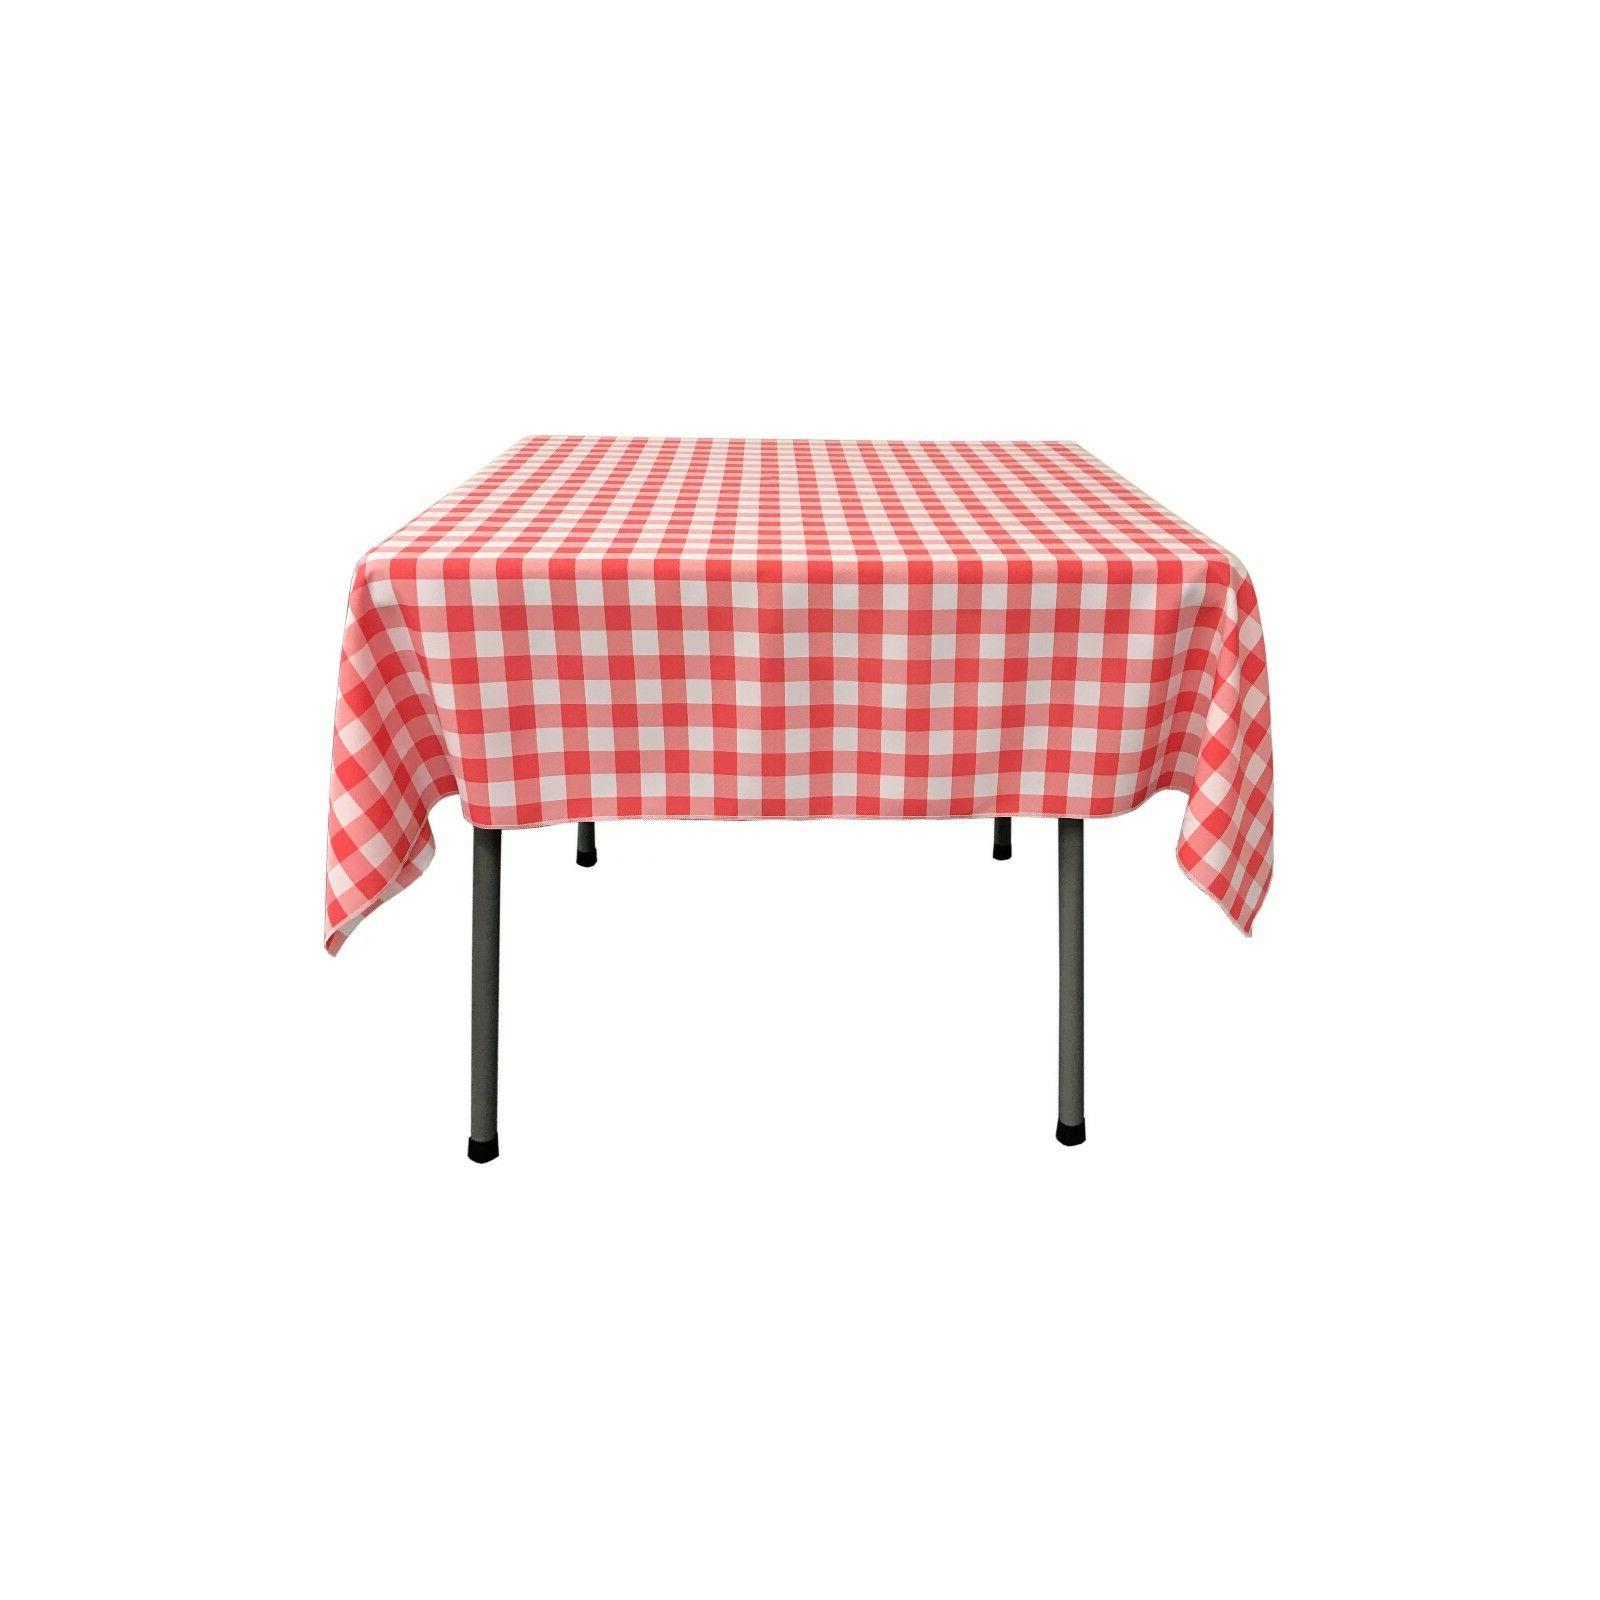 square checkered tablecloth 52 by 52 inches